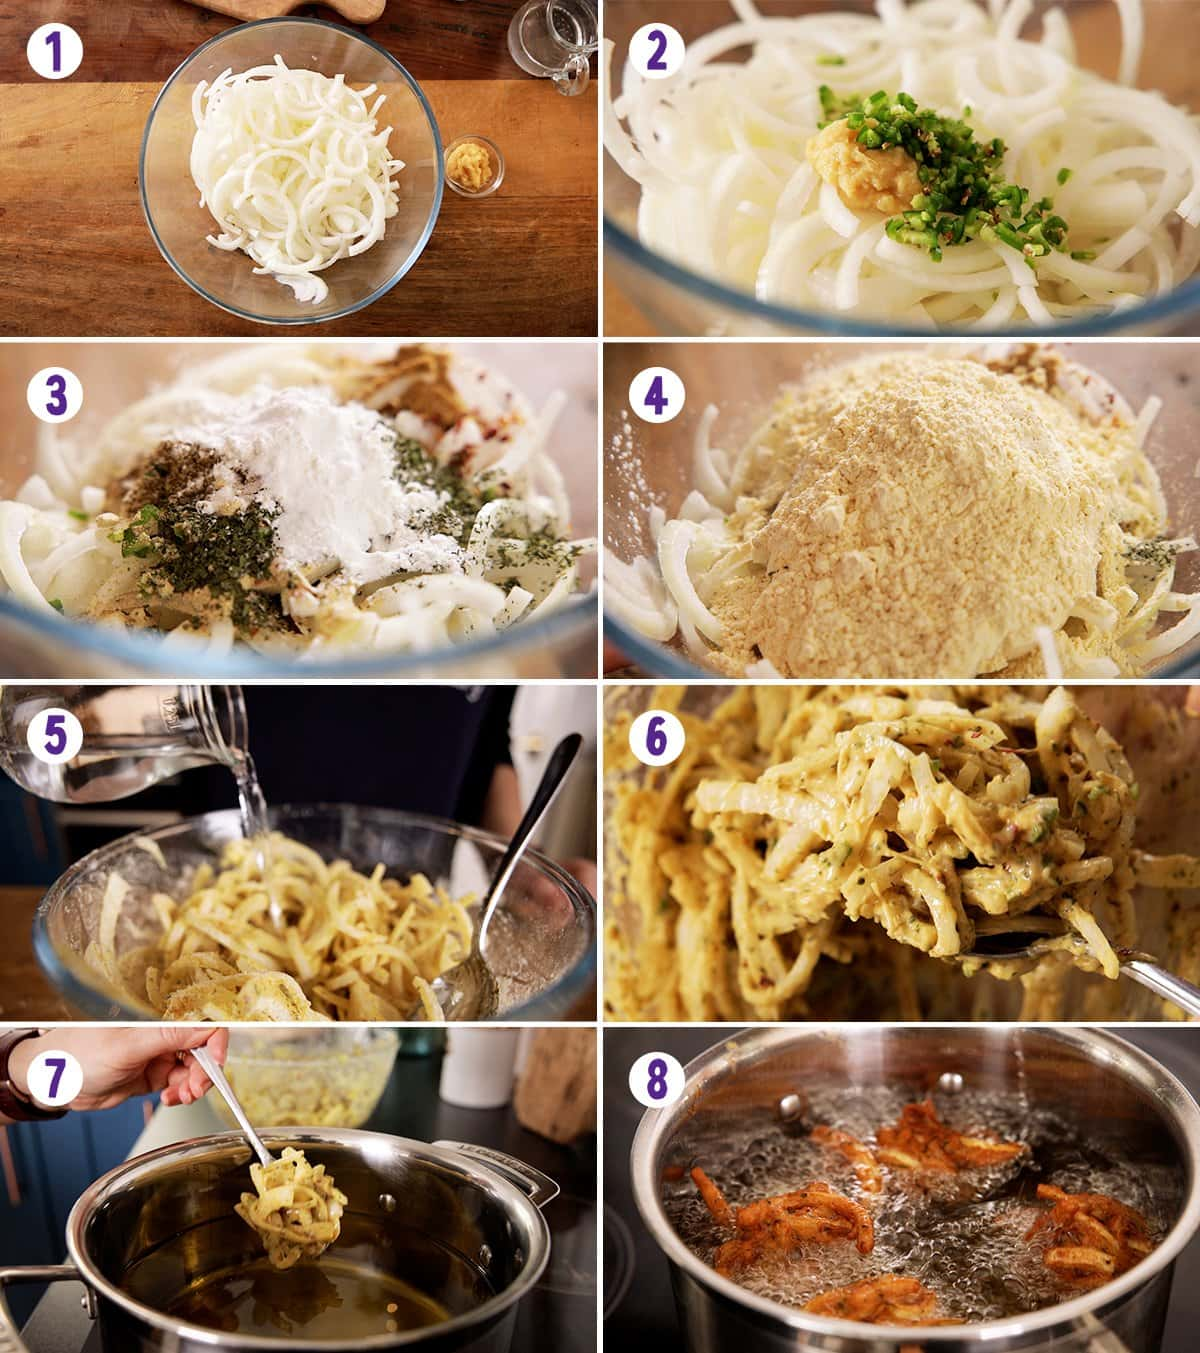 8 image collage showing how to make onion bhaji